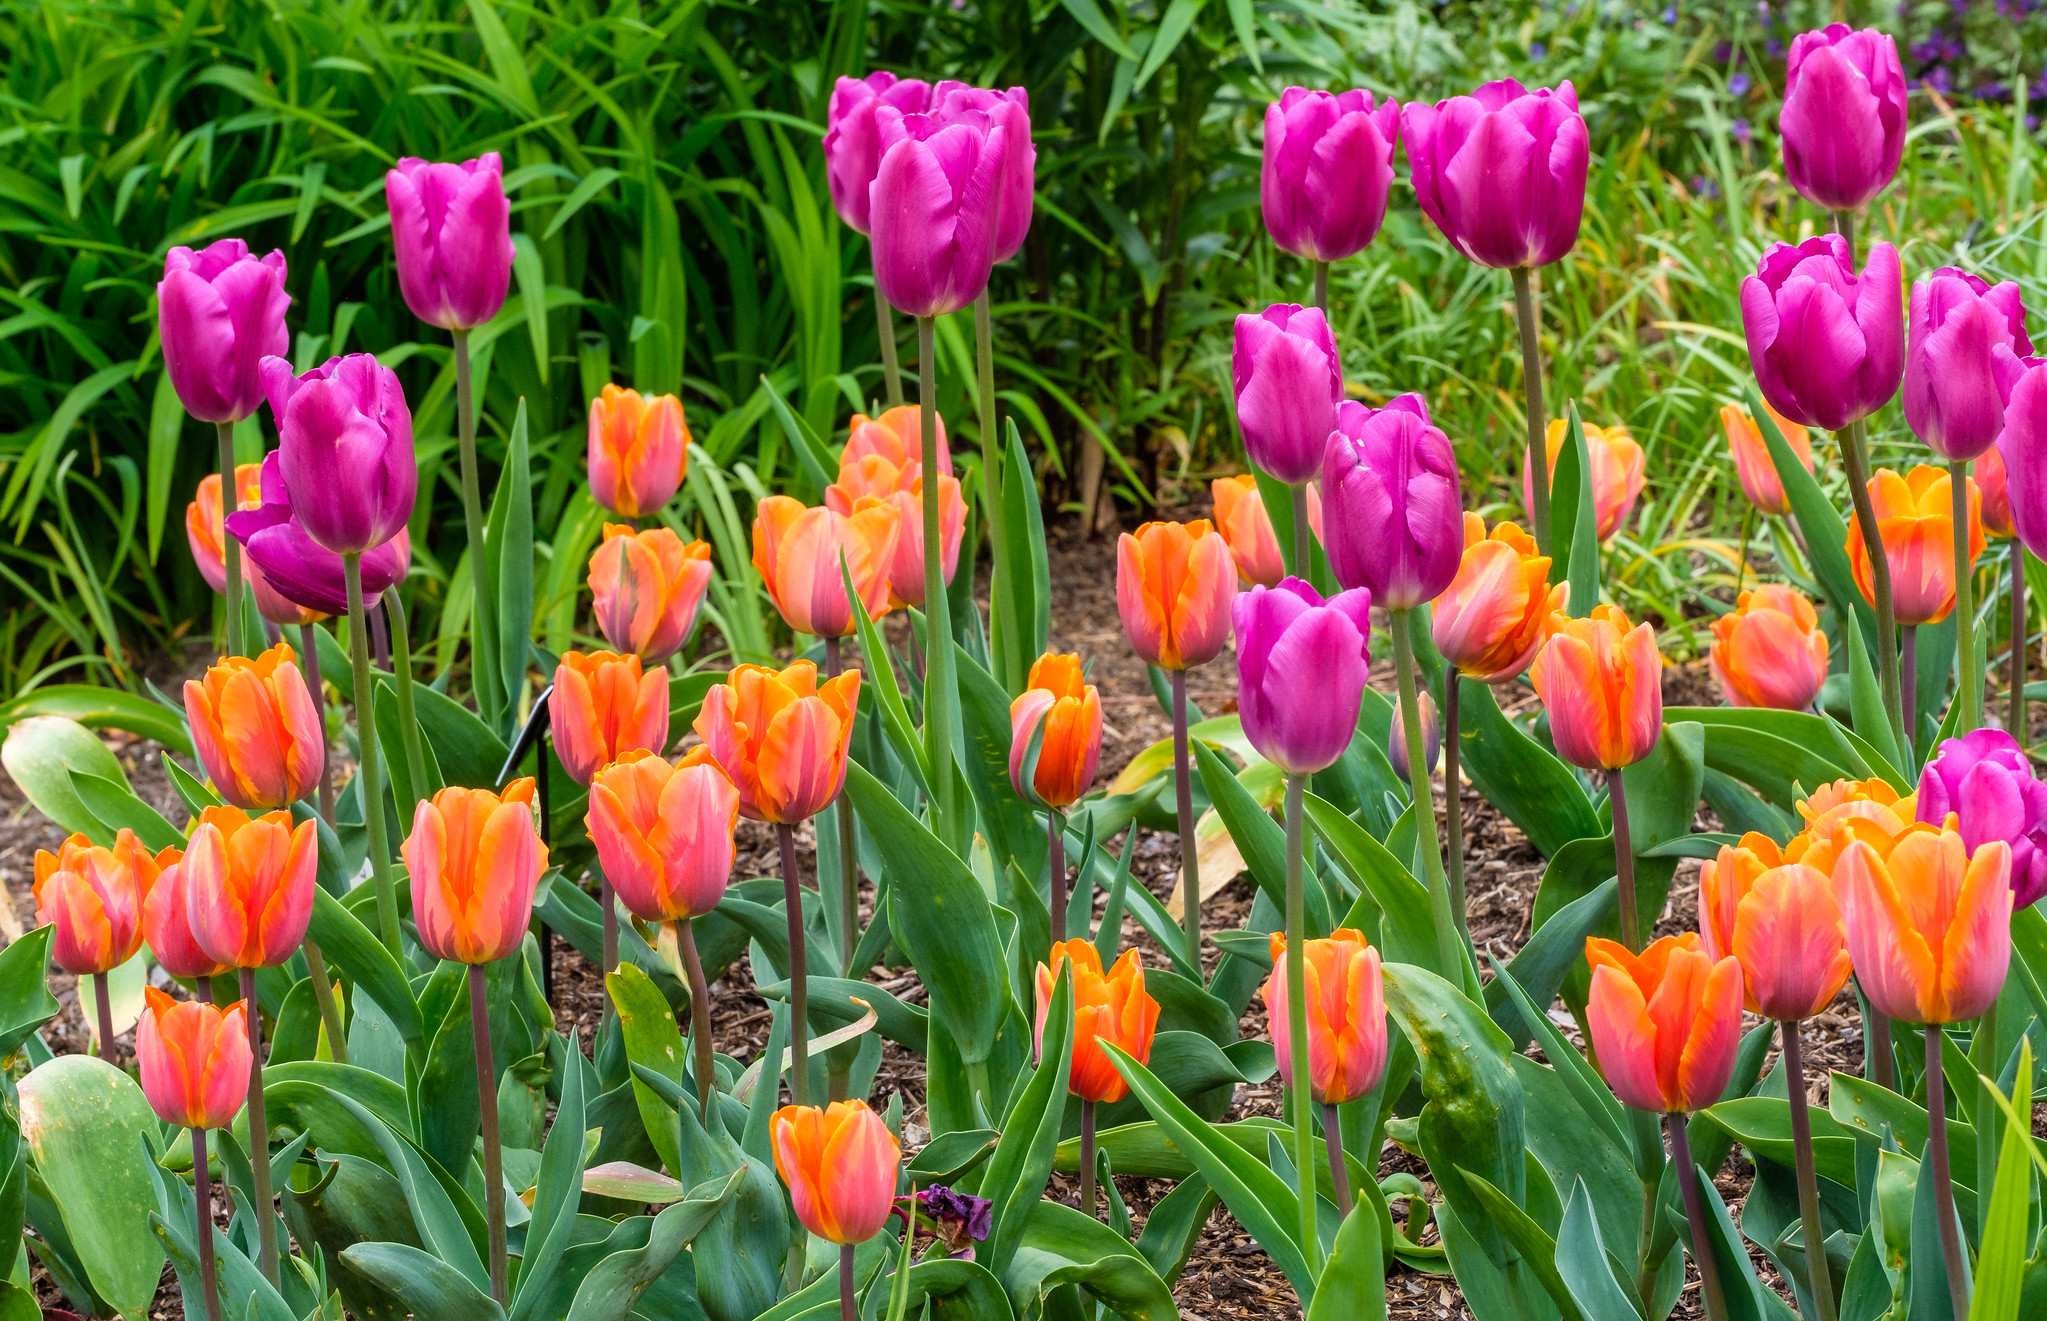 Beautiful tulips flowering in spring at Holehird Gardens windermere in the Lake District cumbria